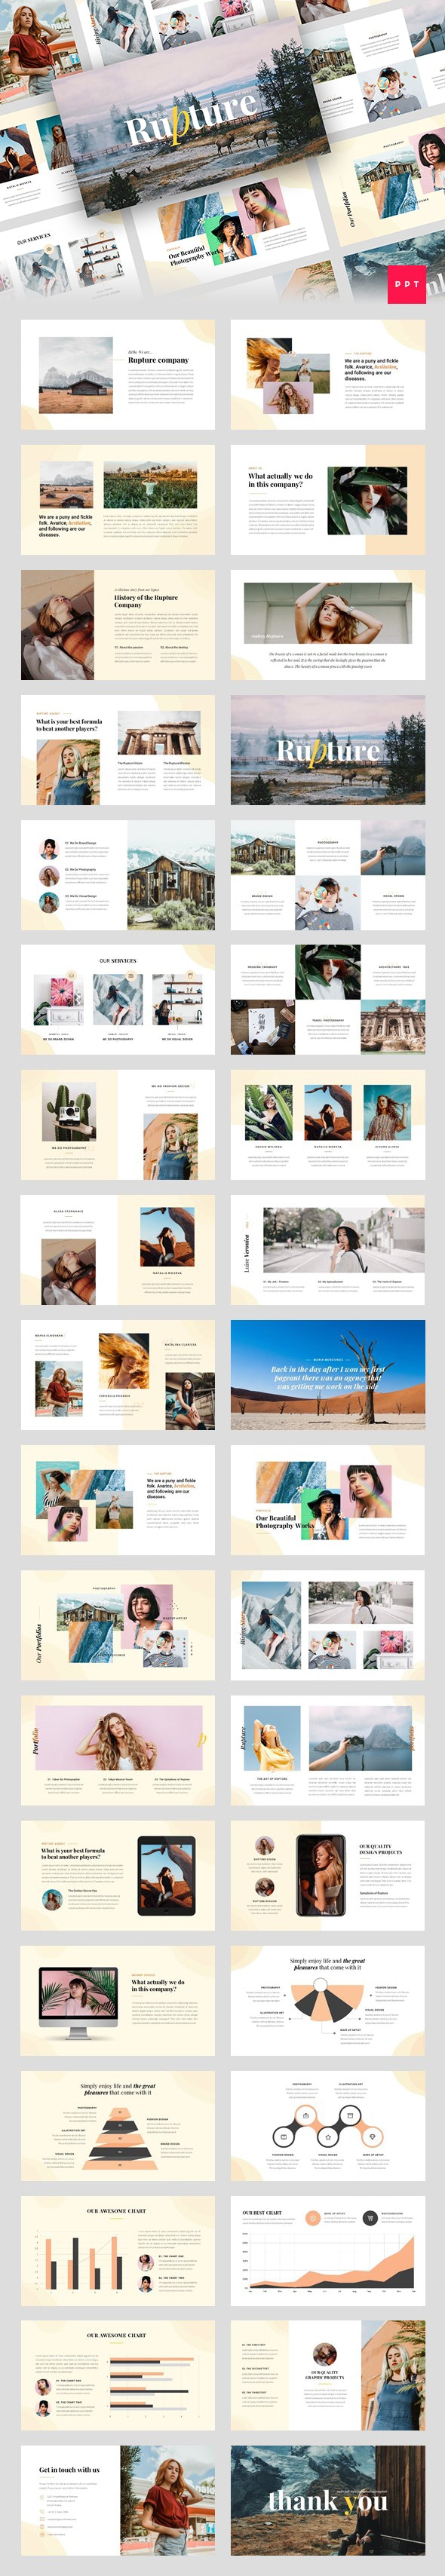 Rupture - Folk Style Agency PowerPoint Template - Creative PowerPoint Templates